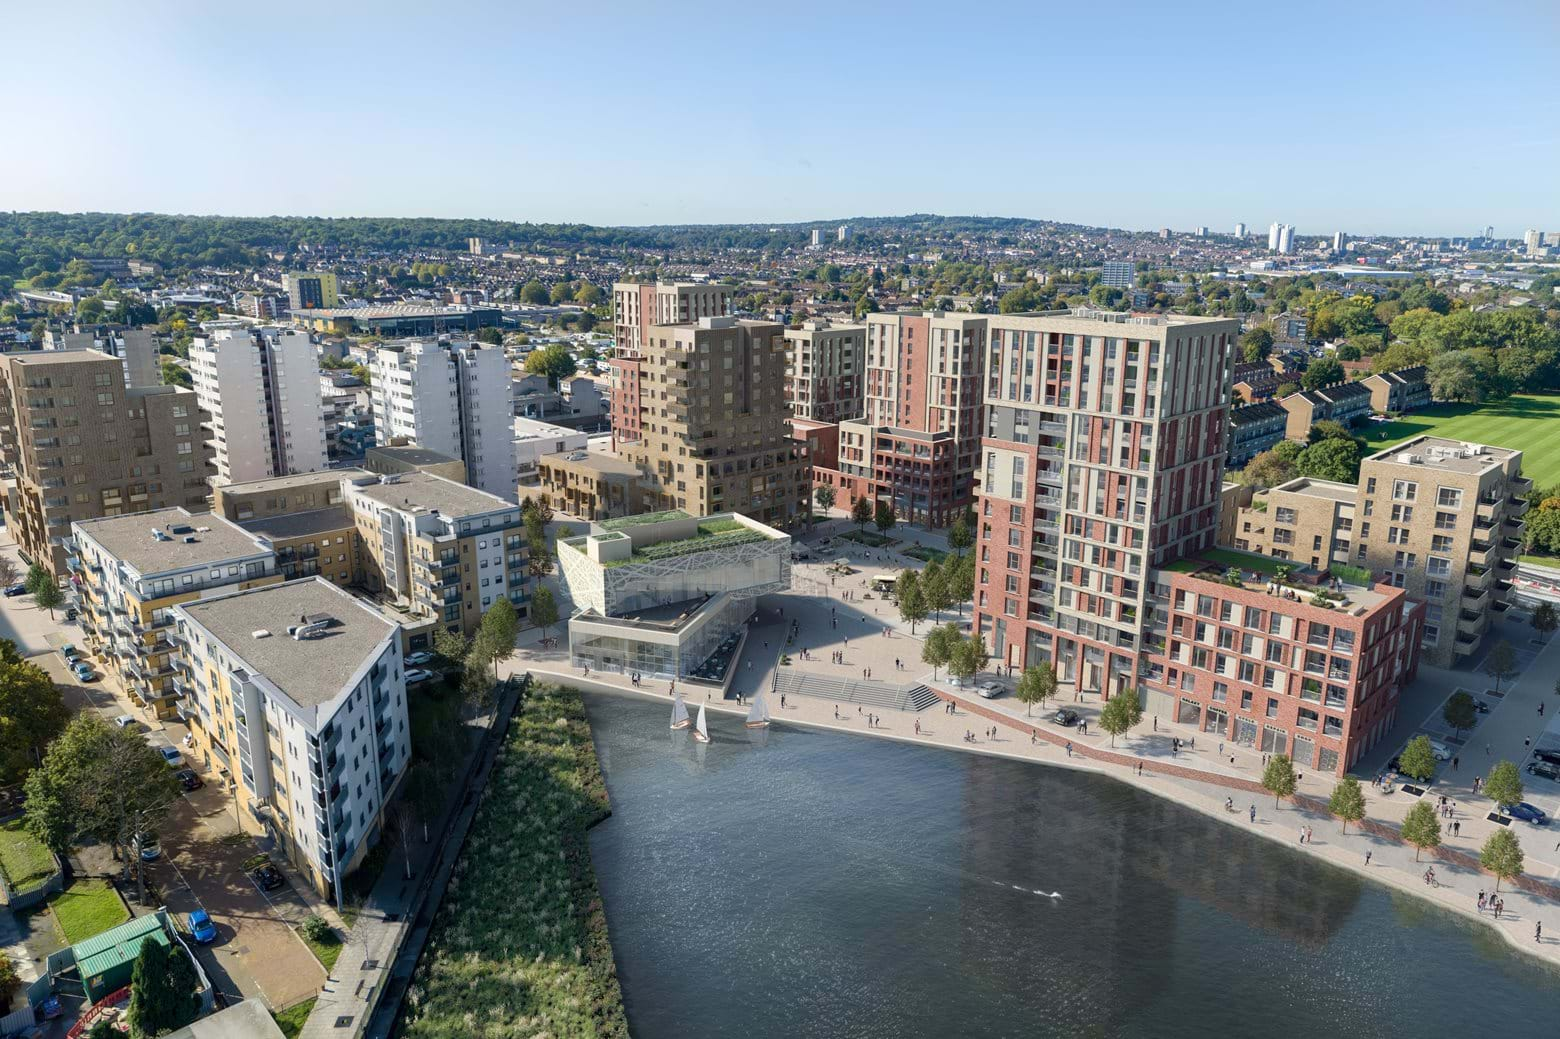 View of Southmere development in Thamesmead